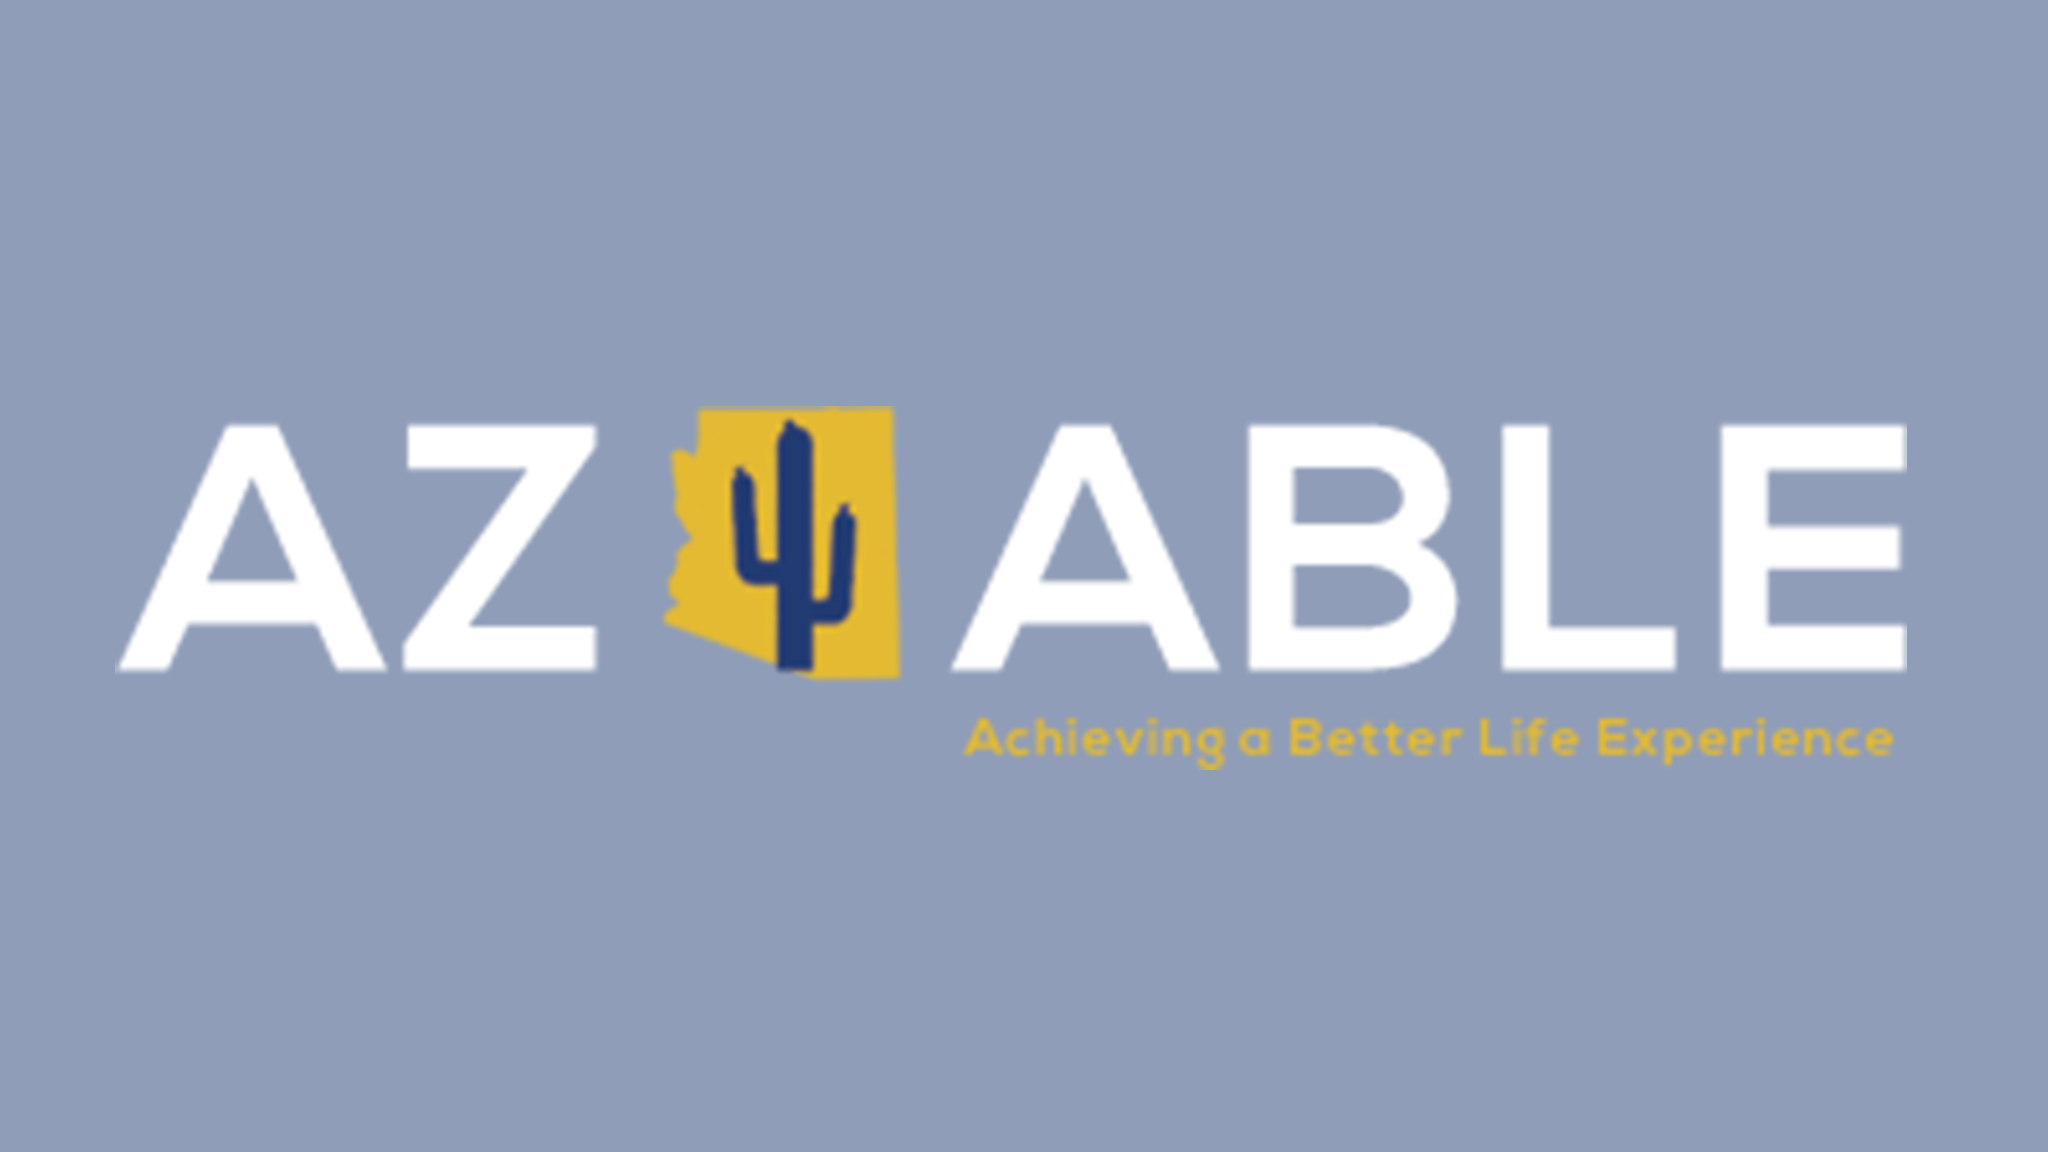 AZ ABLE: Achieving a Better Life Experience